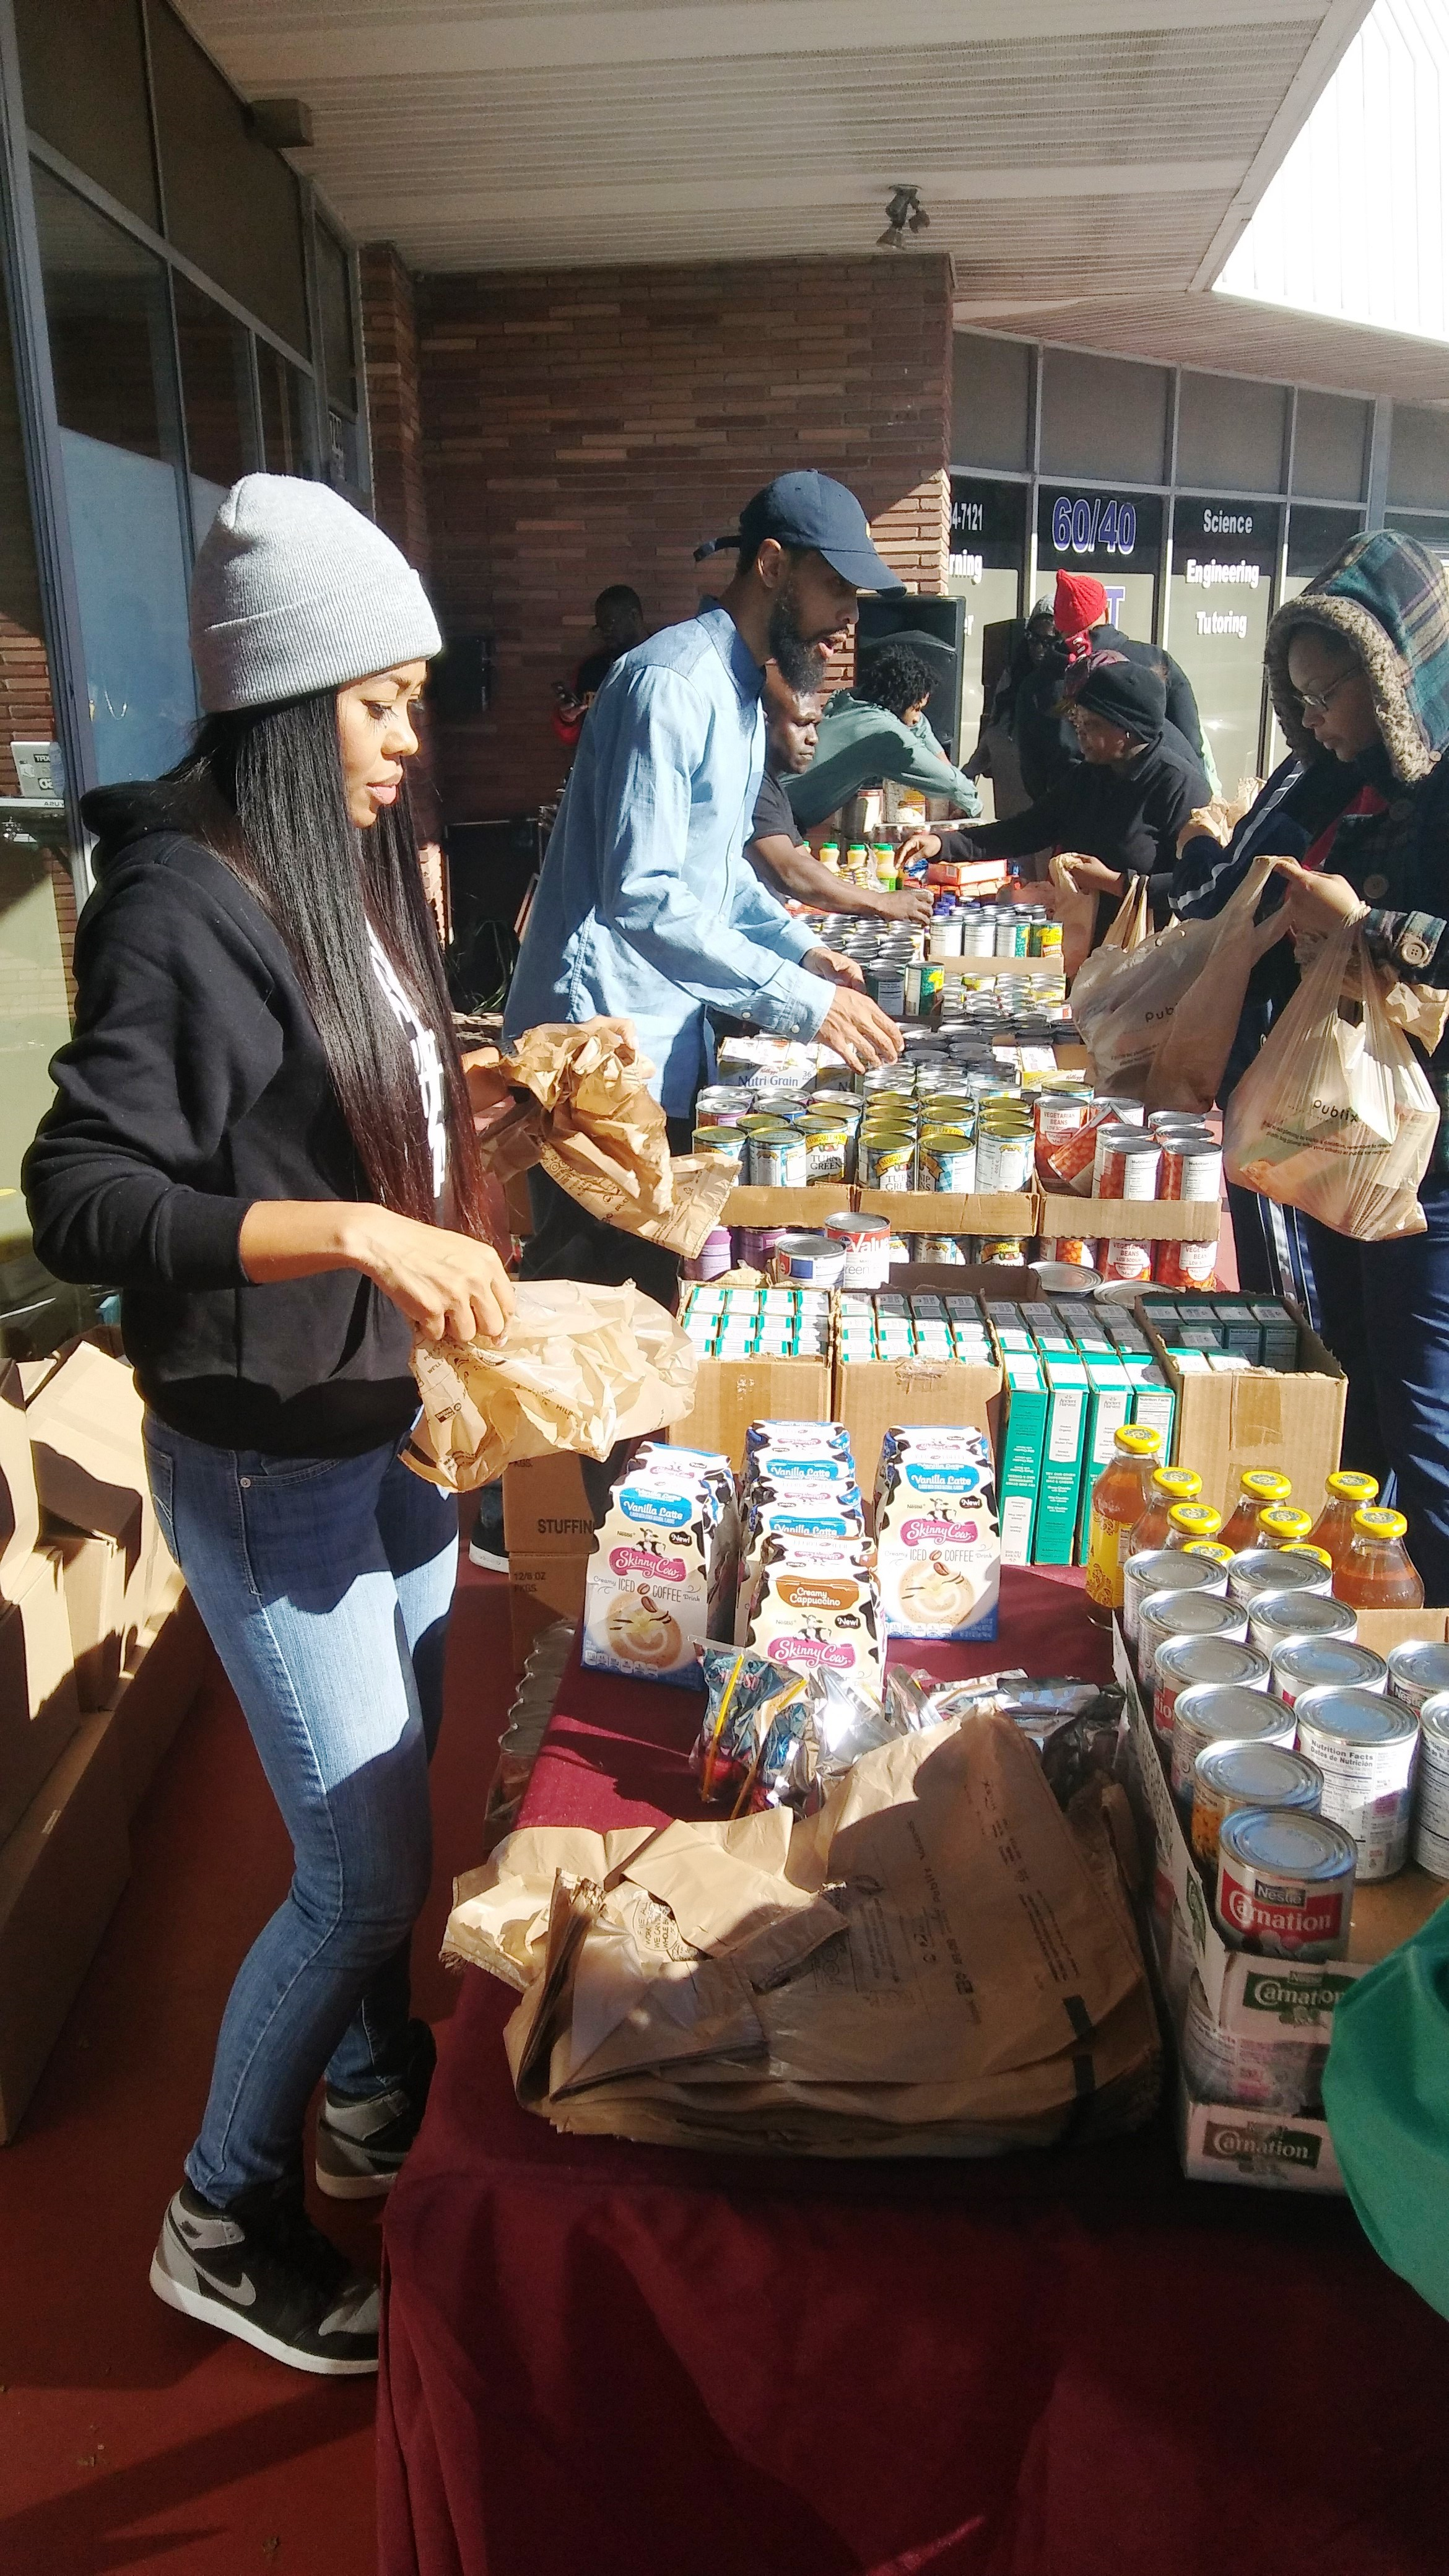 reec-host-grocery-give-away-payusa-11-20-6